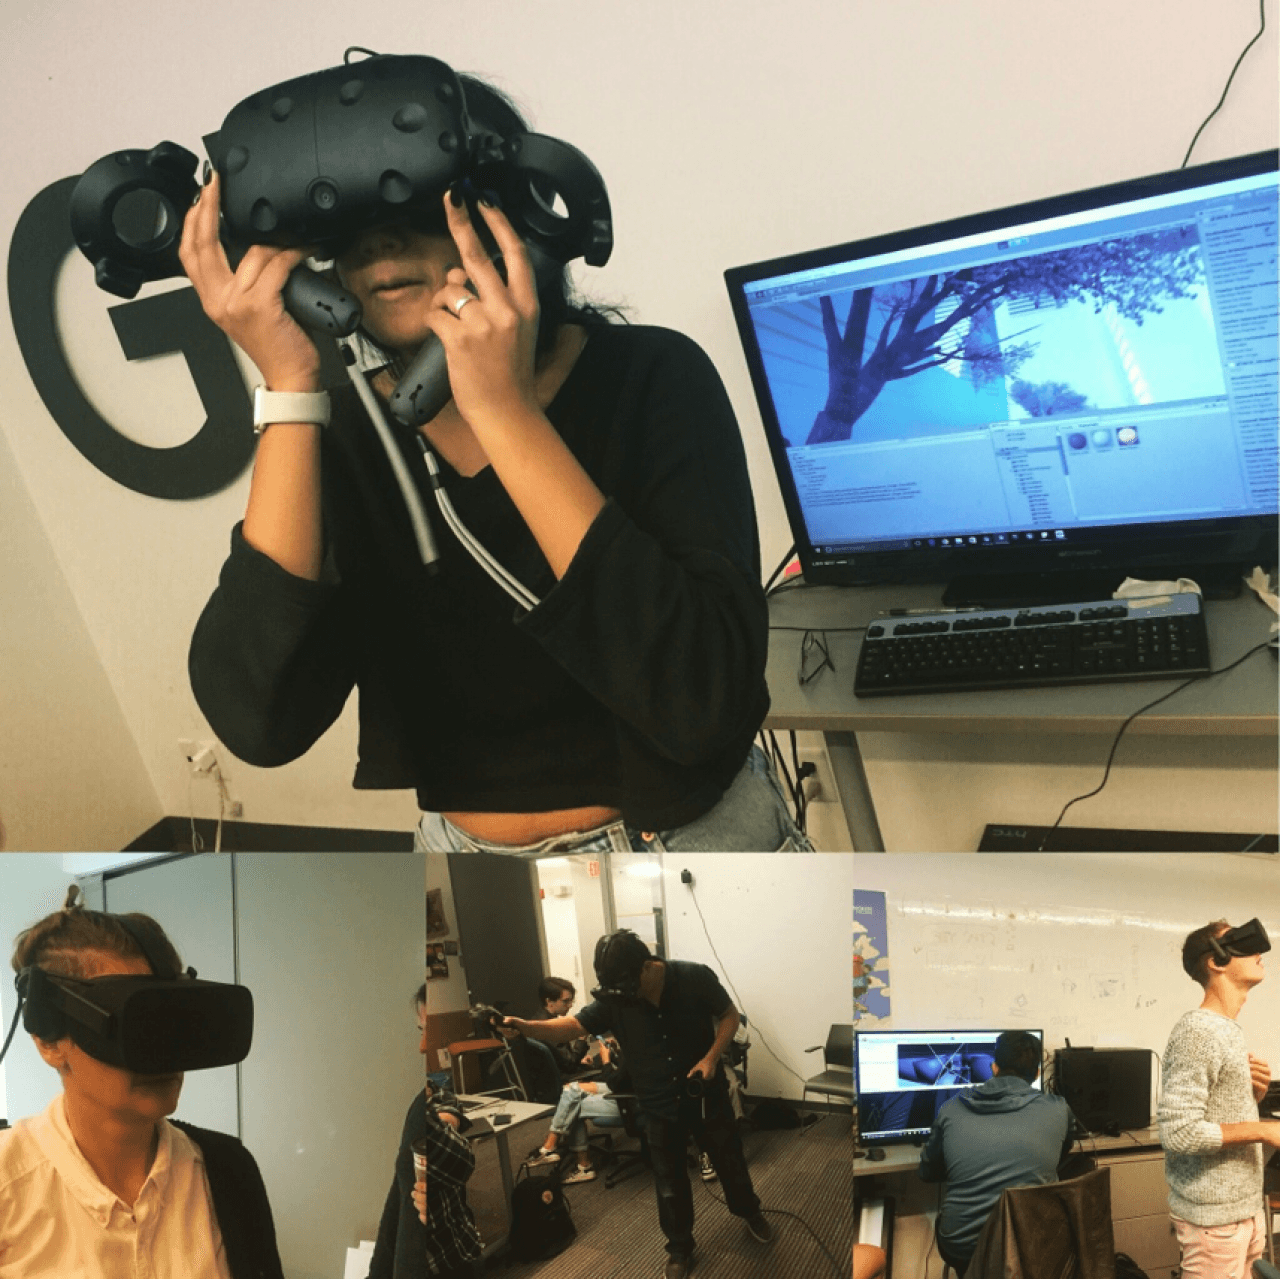 Photographs of immersants interacting with VR technology